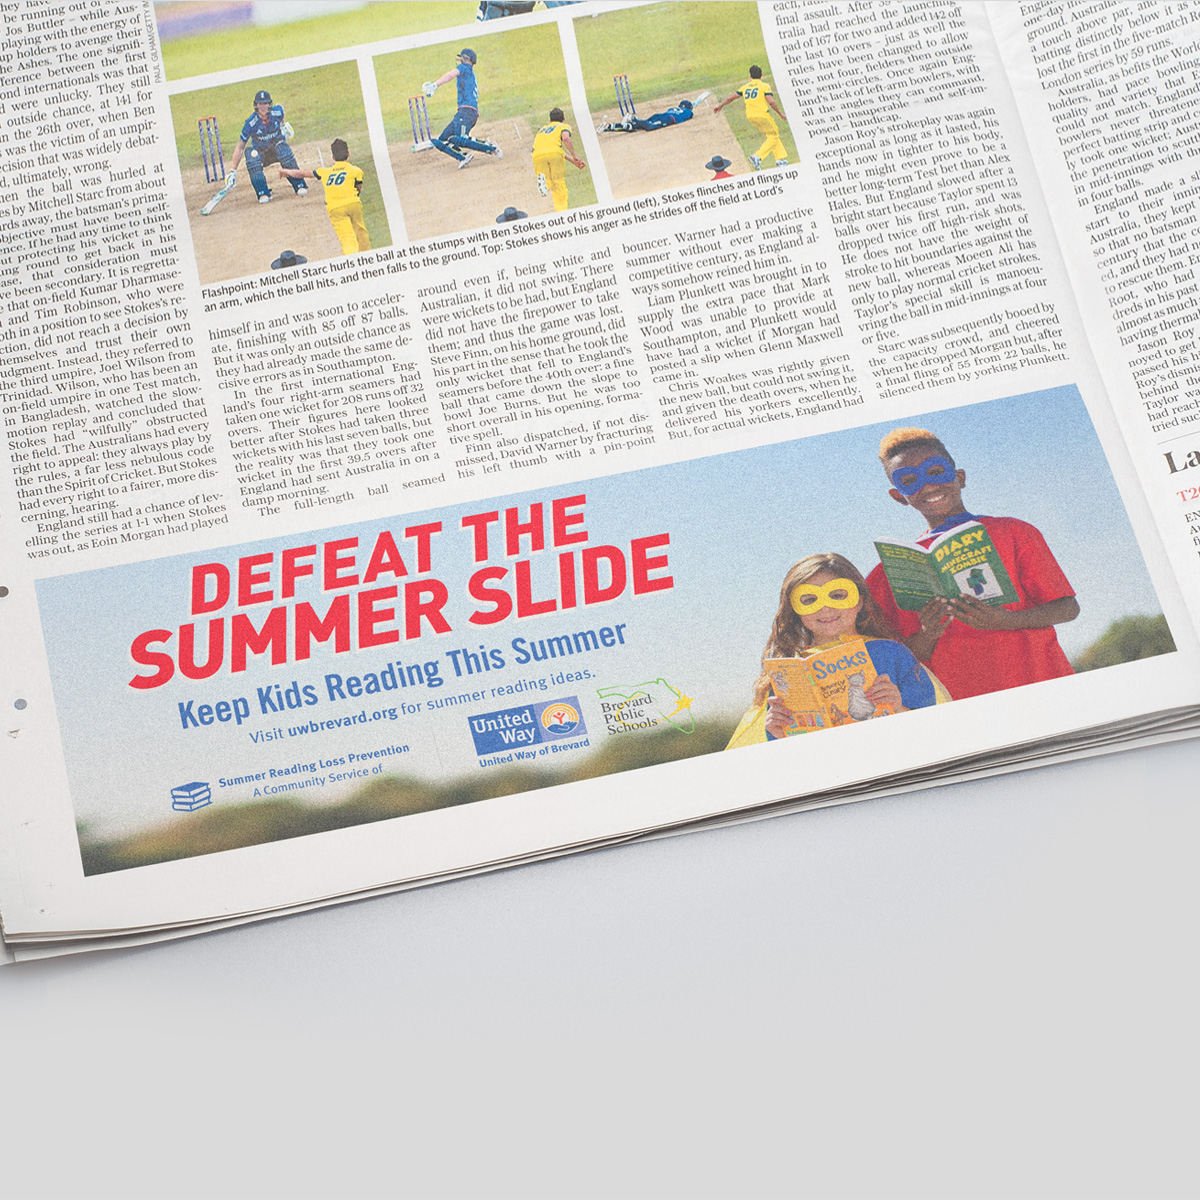 United way summer slide strip ad